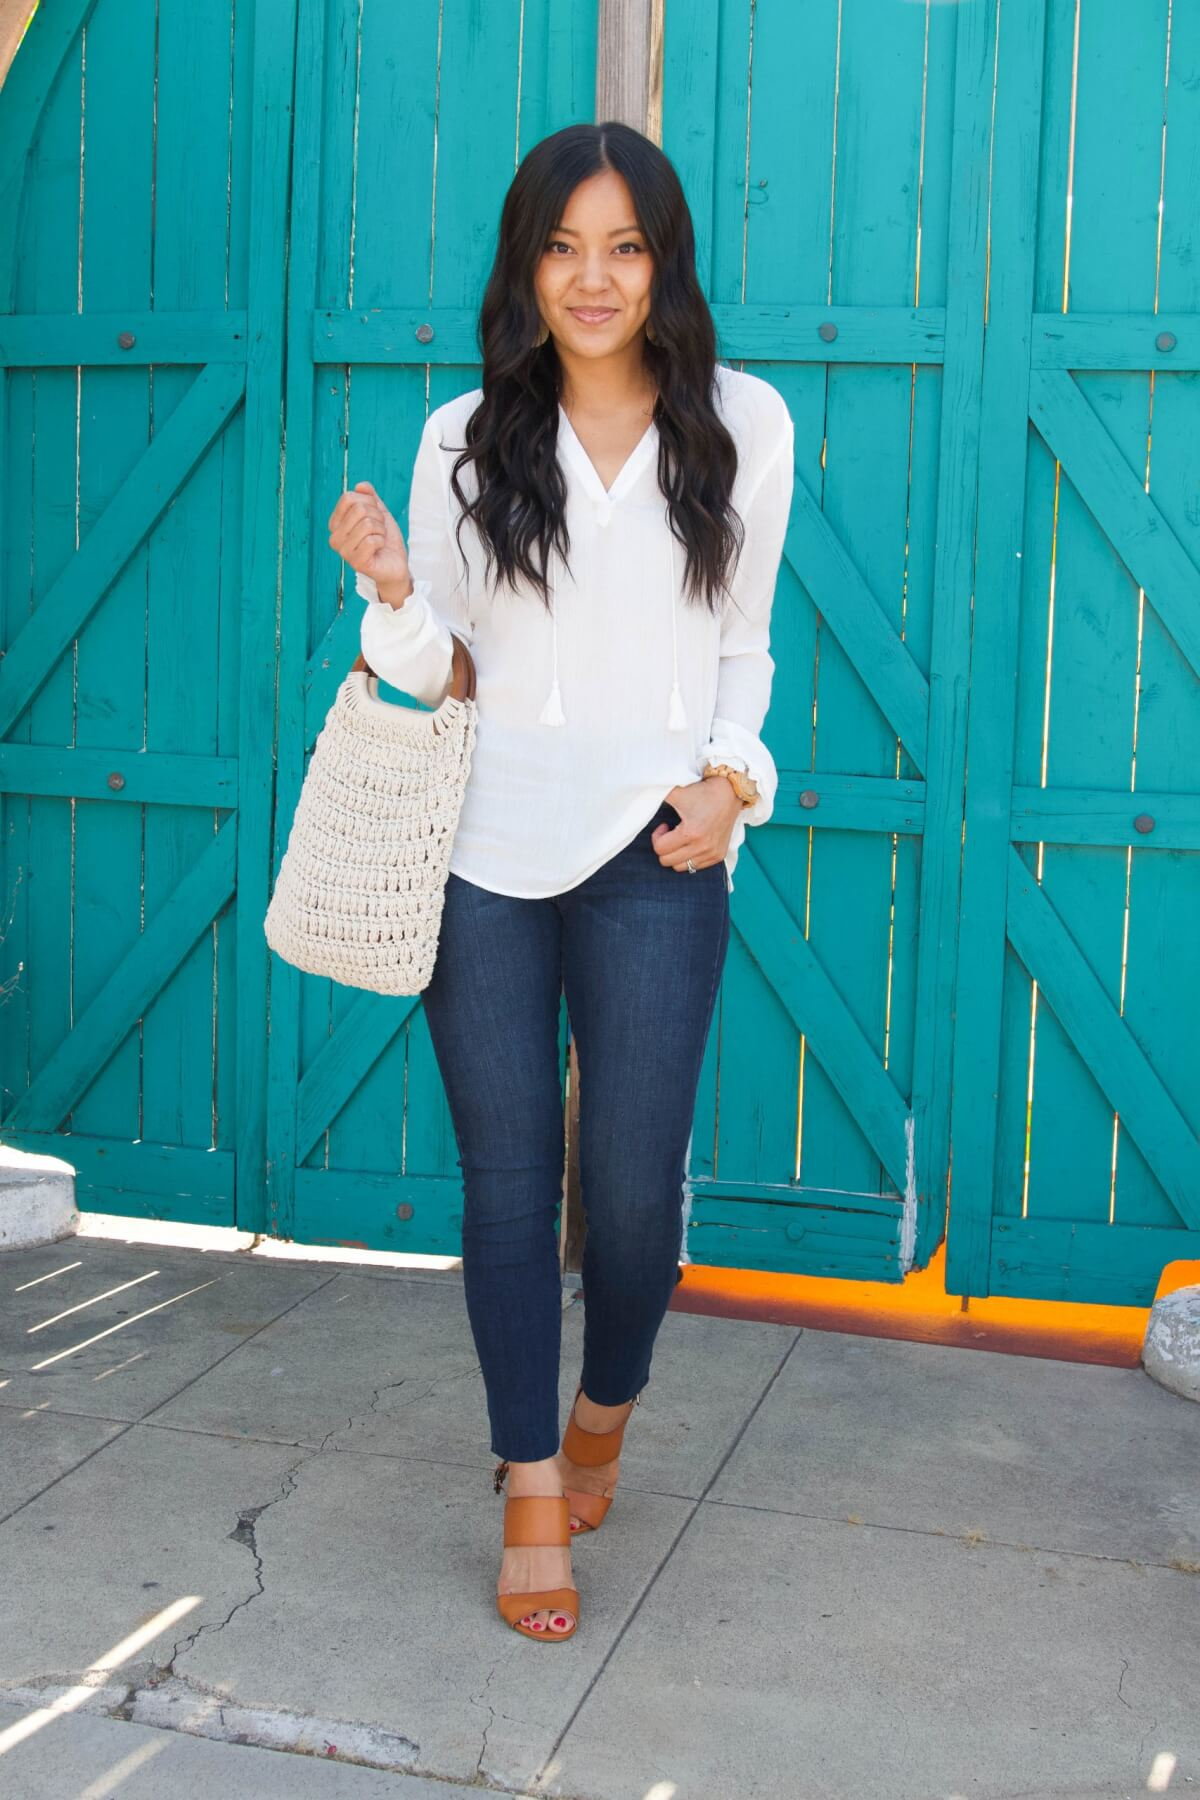 Classic Outfit: white tassel tie top + jeans + tan sandals + woven bag